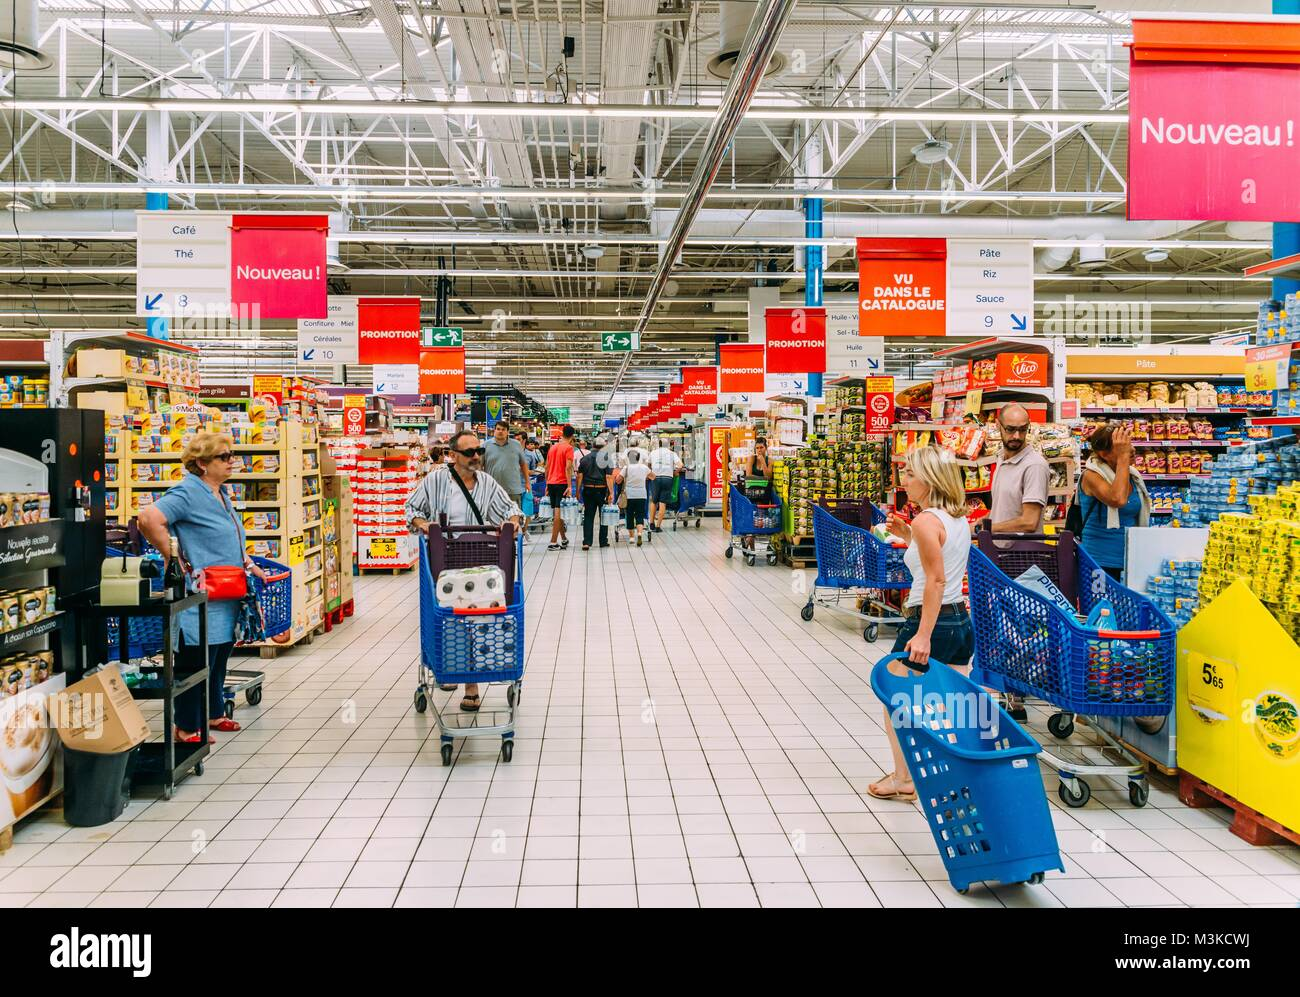 carrefour is one of the largest Since its founding in 1958, carrefour has become one of the world's leading retailers and one of the largest fast-moving and exciting hypermarkets in the.